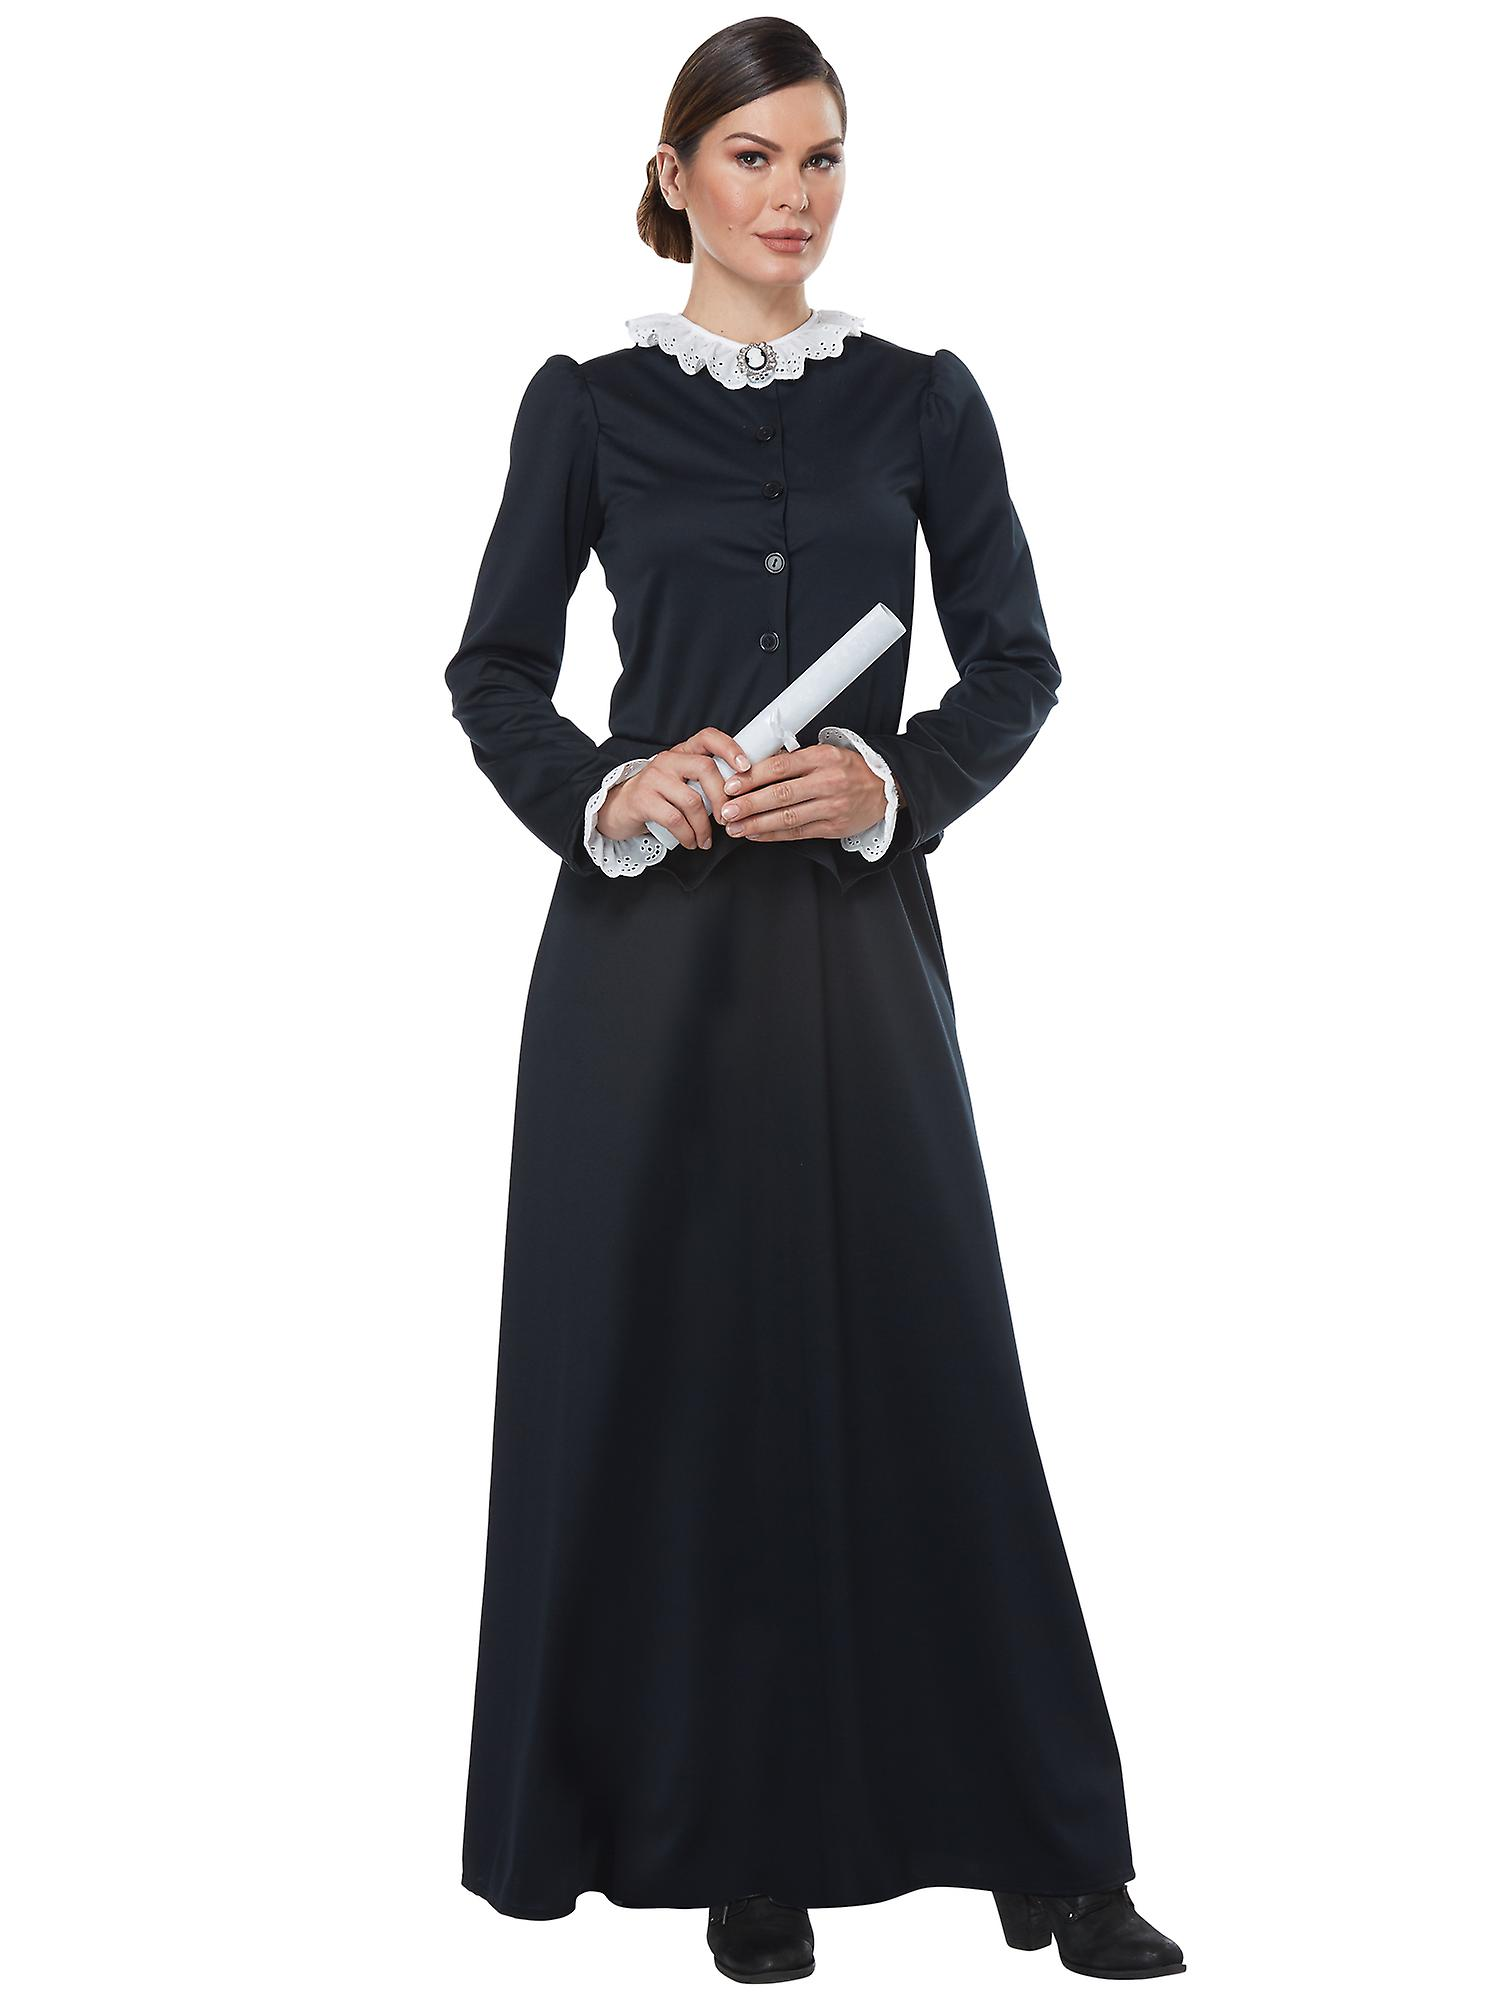 Susan B Anthony Harriet Tubman 1800s Colonial Olden Day Victorian Womens Costume